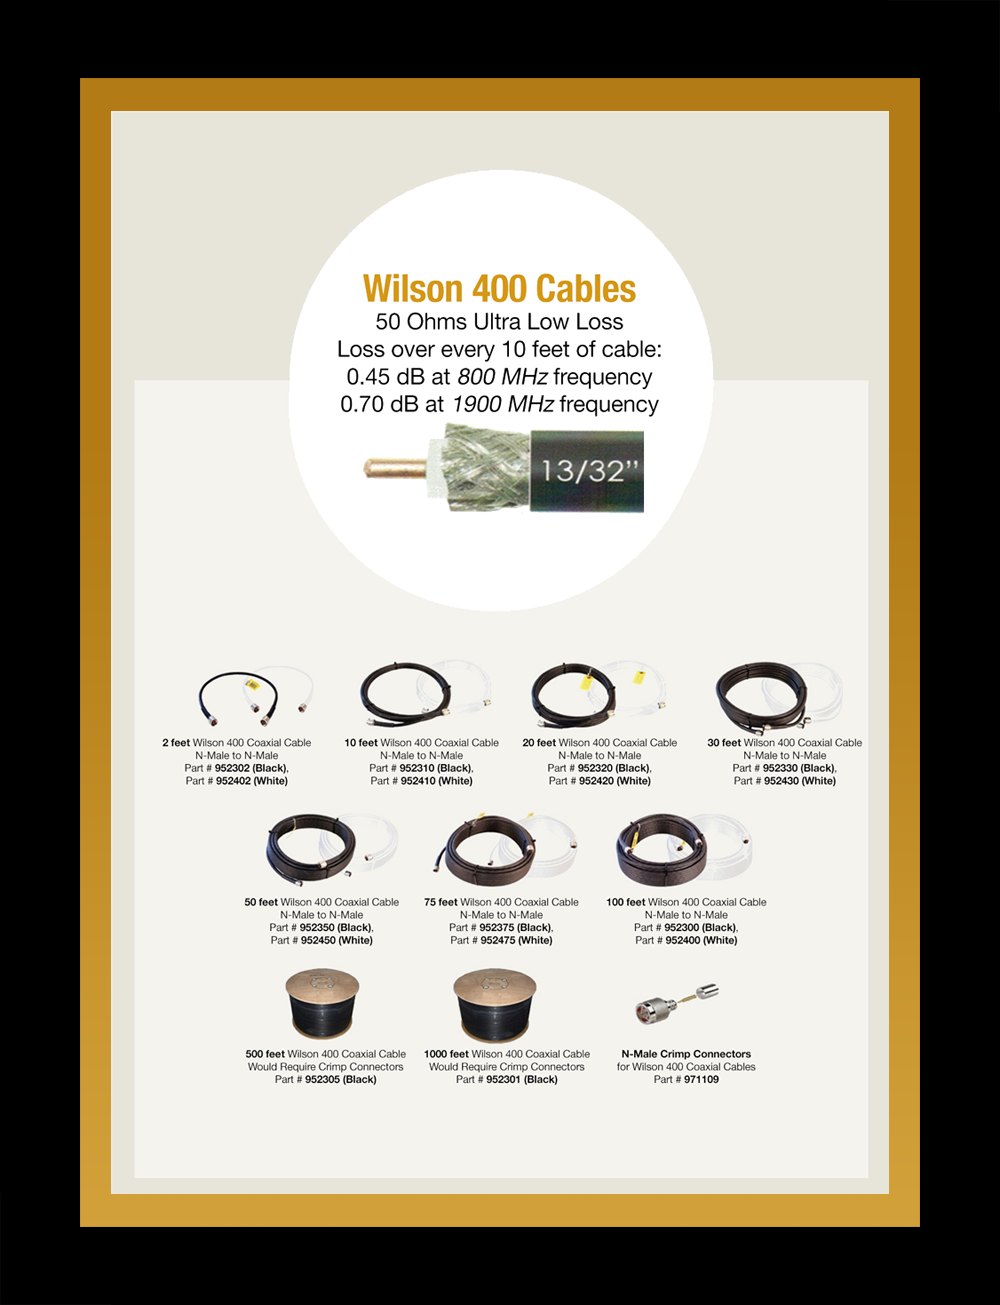 Wilson400 Coax Cable: All about Wilson-400 Coaxial Cables.